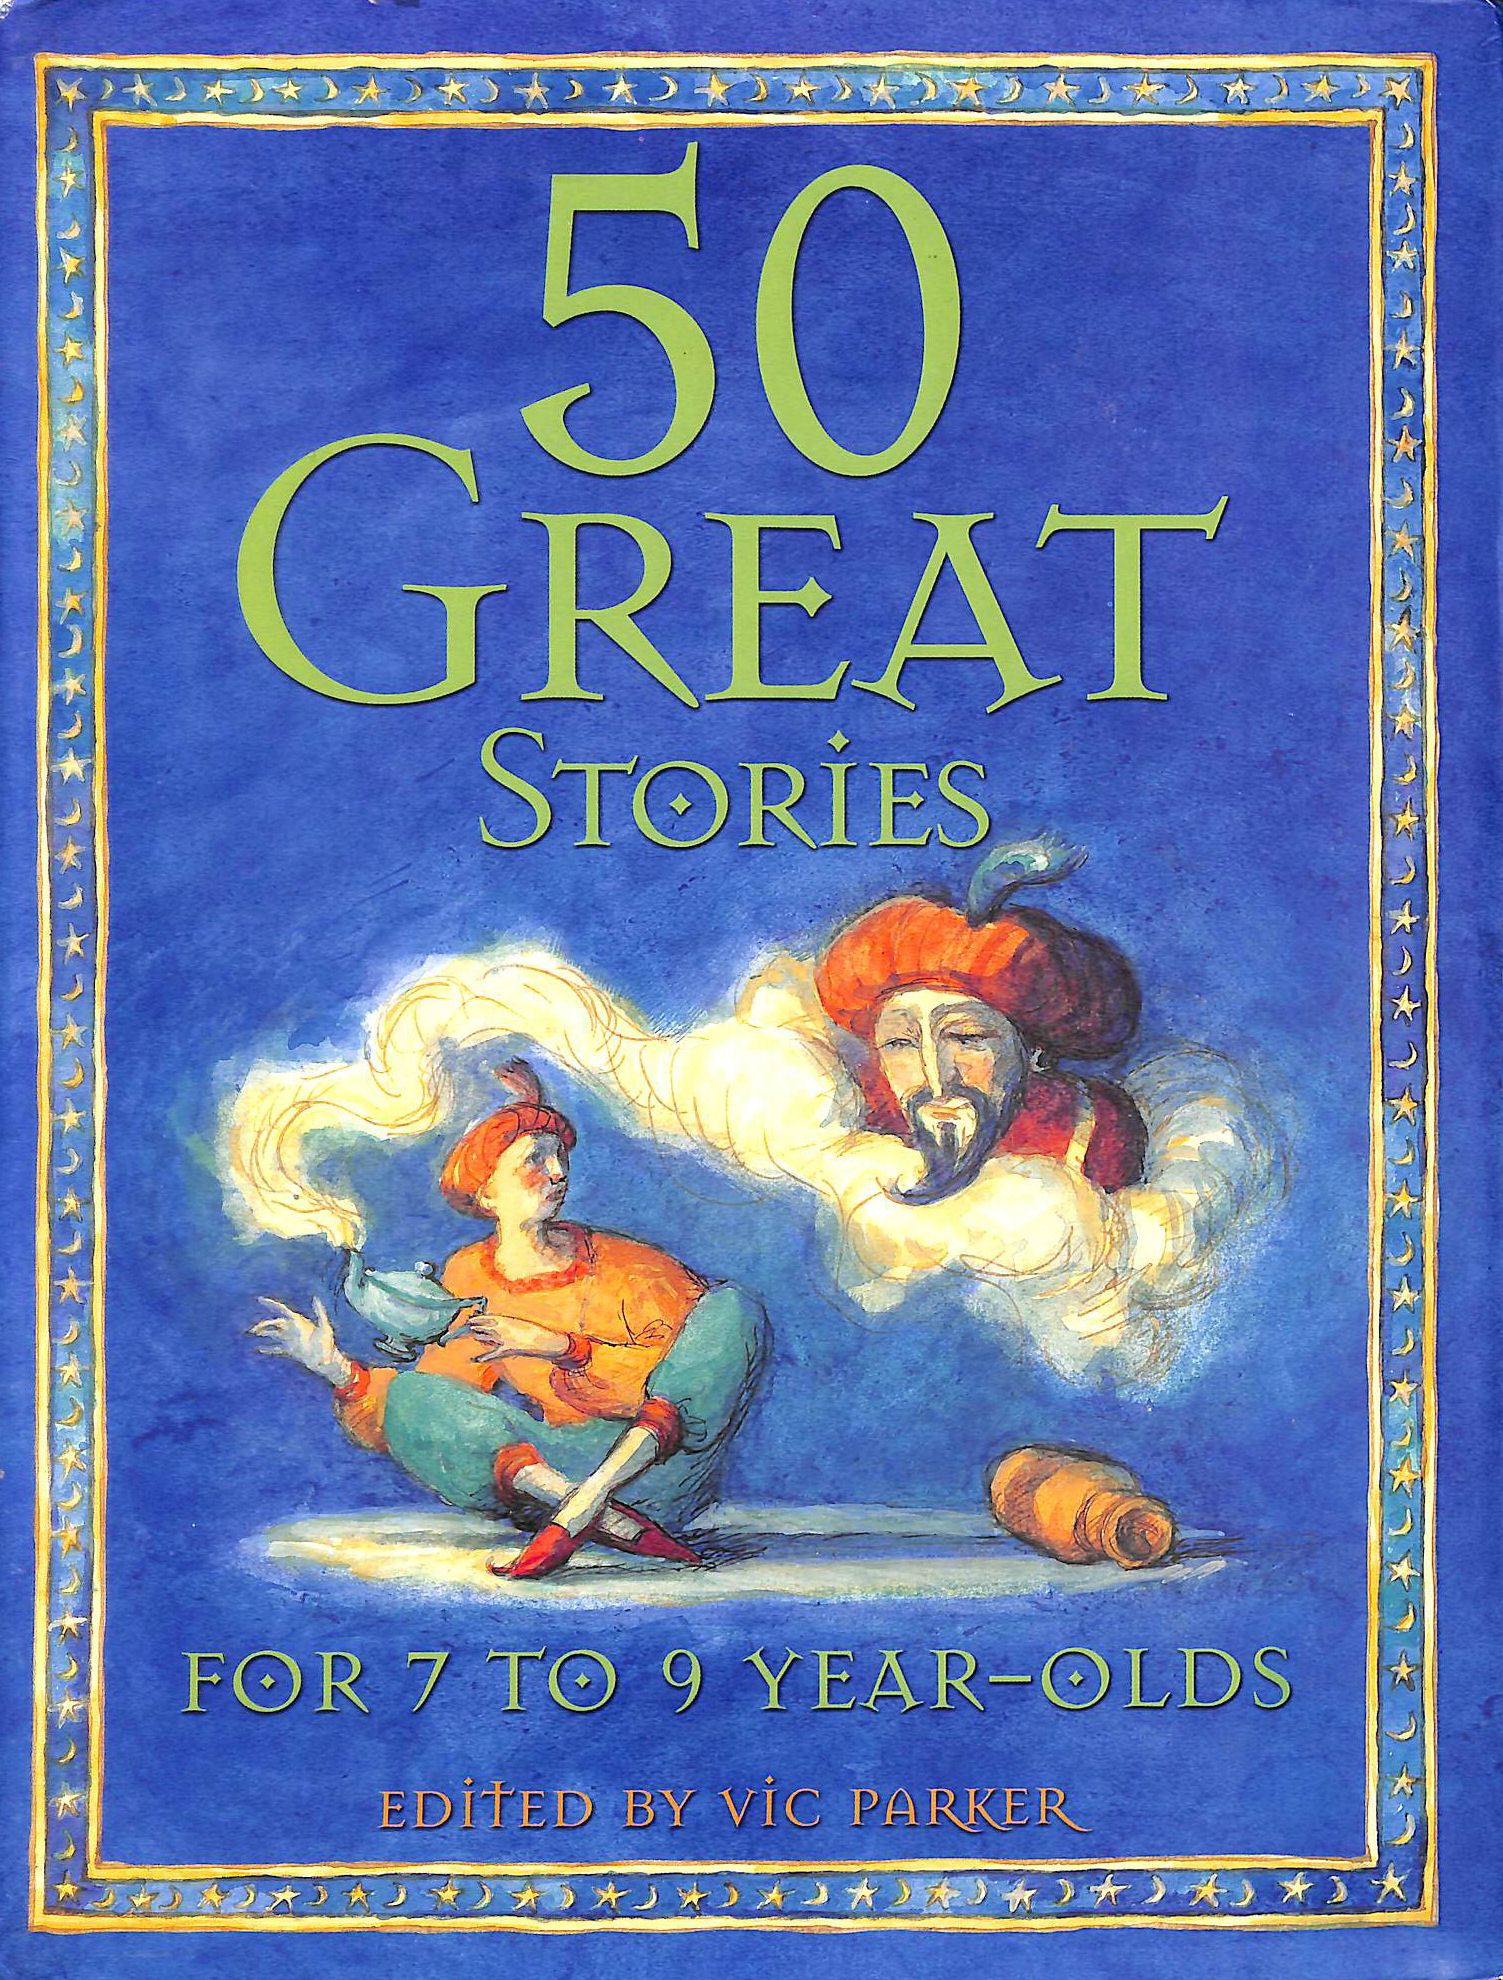 Image for 50 Great Bedtime Stories For 7 To 9 Year-Olds